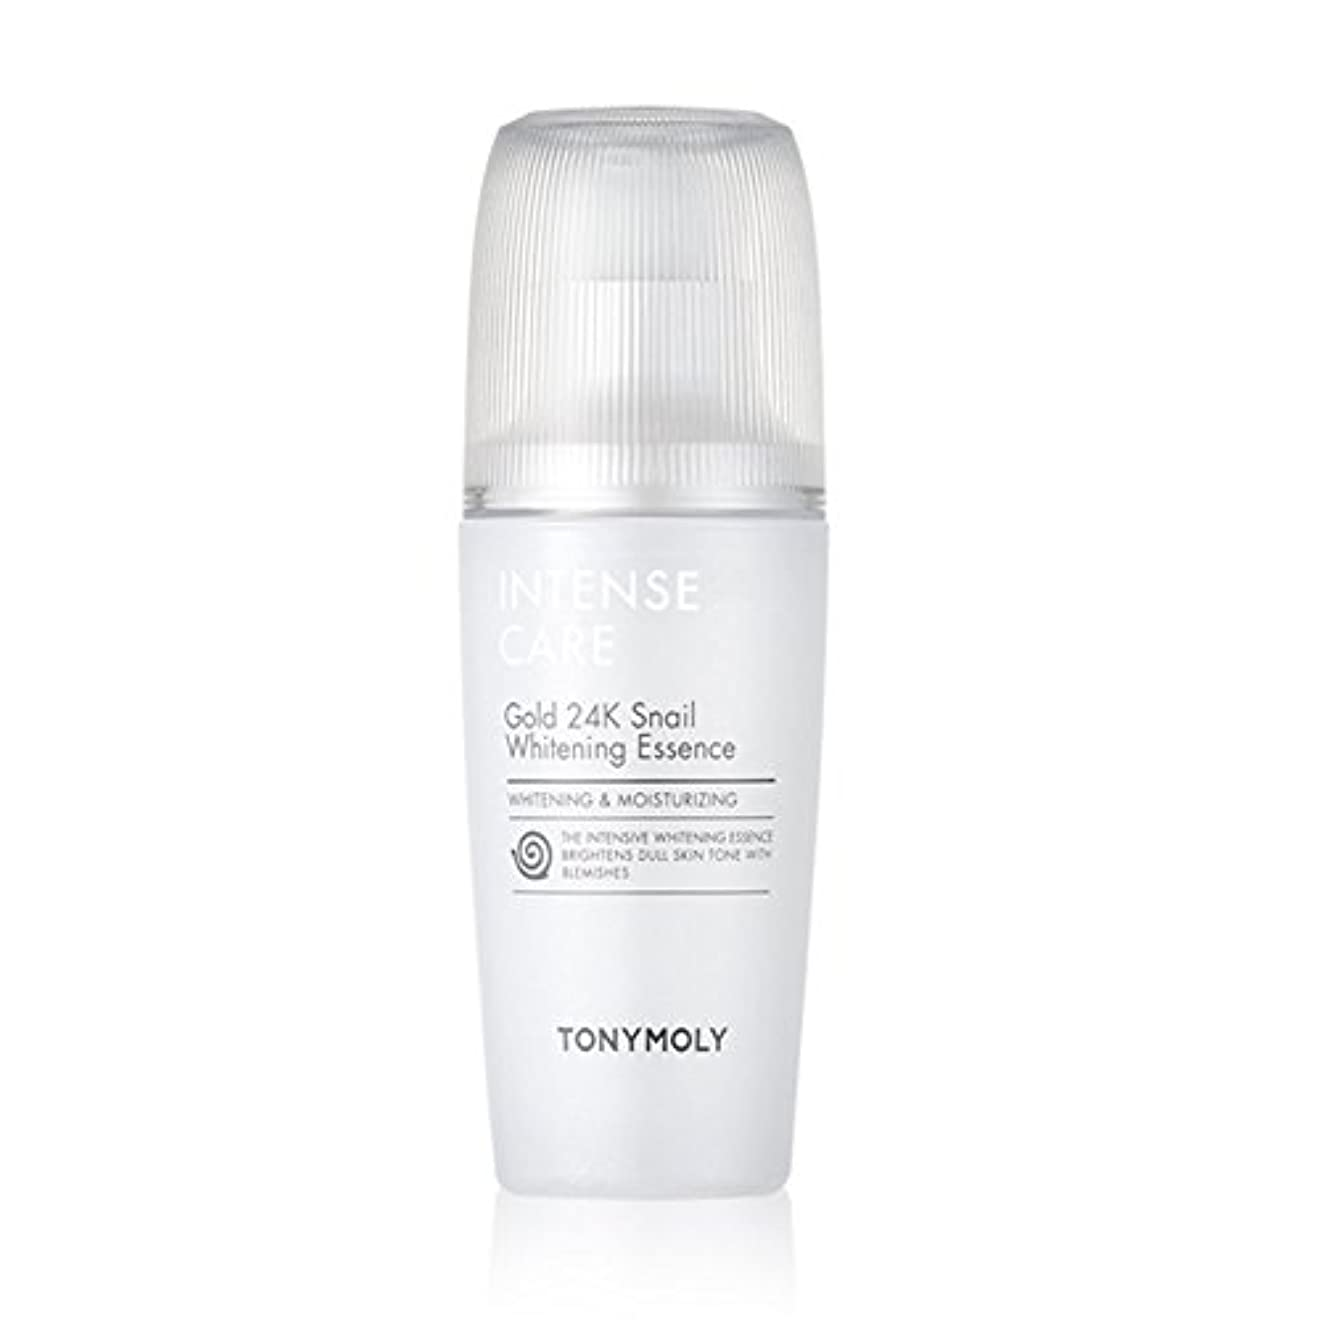 共和党パンサーピストルトニモリー TONYMOLY INTENSE CARE Gold 24K Snail Whitening Essence 35ml